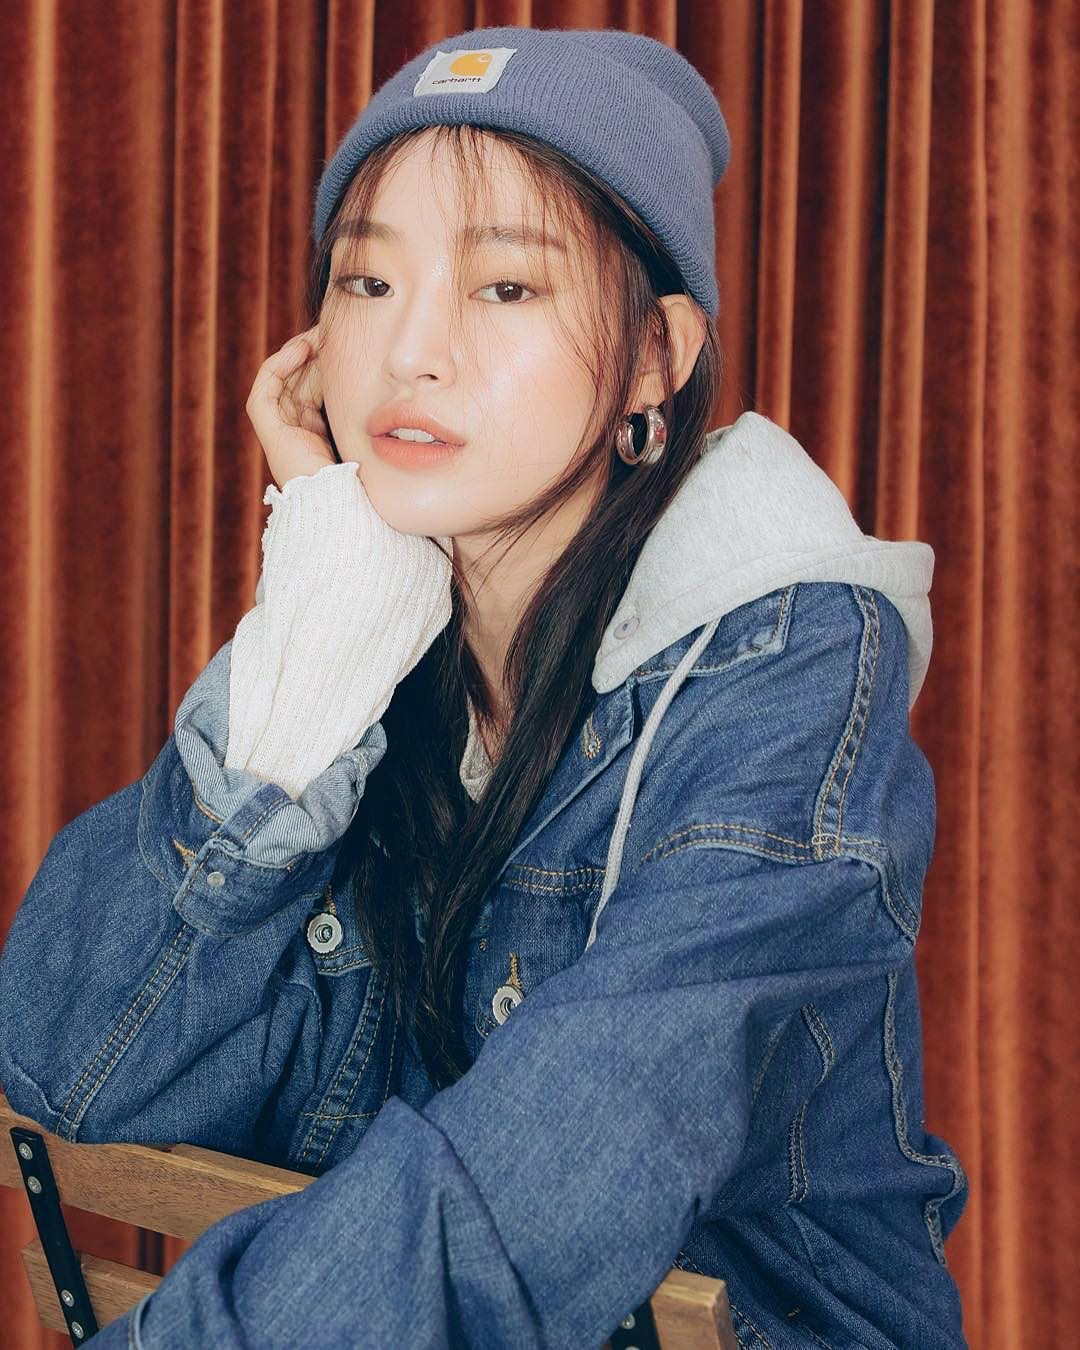 Grey Hoodie With Denim Jacket In Blue For Fall 2019